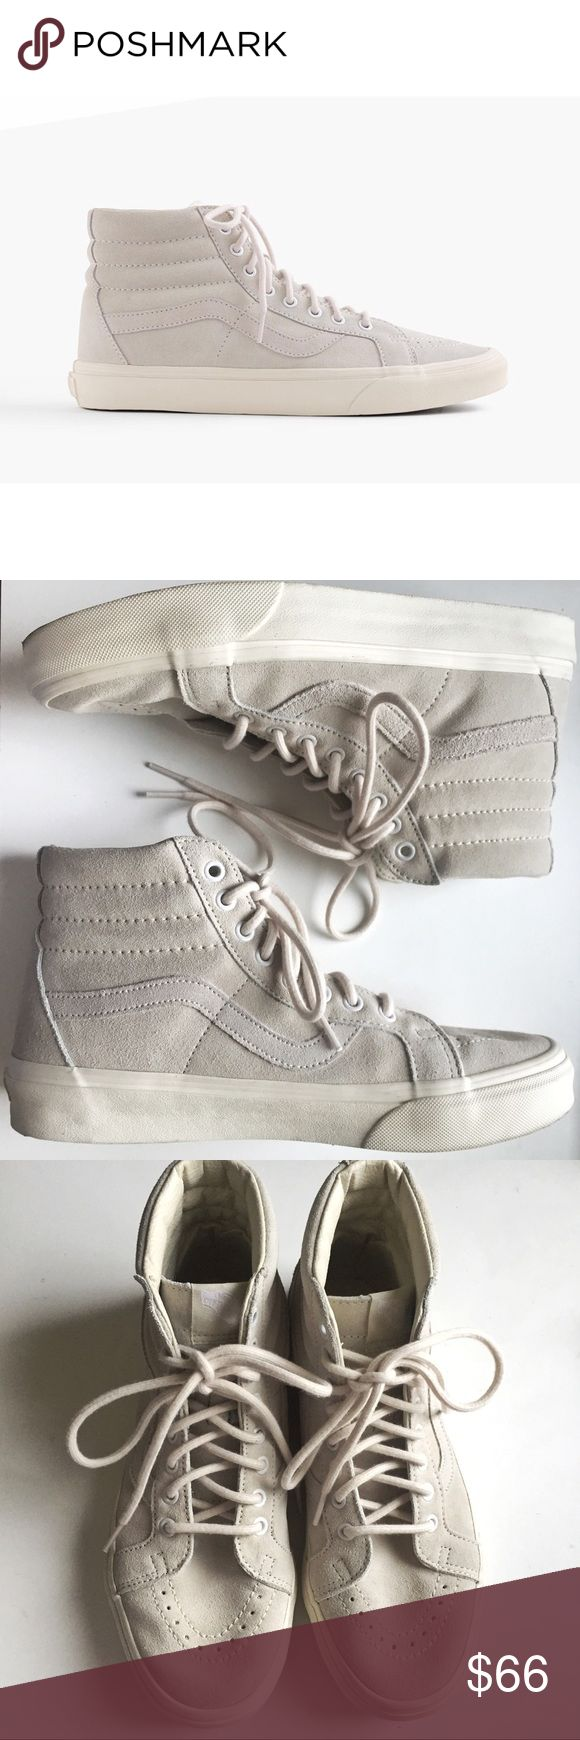 Vans x J.Crew beige suede Sk8-Hi shoes Rare suede Vans from their collaboration with J. Crew. Impossible to find online or in stores! I purchased these at a J.Crew sample sale a few months ago. Would best fit someone who wears a 9.5 or 10. Only worn twice, the suede and leather are in excellent condition. There is slight discoloration on the logo on the tongue (last photo).   US women's size 9.5, US men's size 8, EU size 40.5  📦 Fast shipping: same or next day shipping! 🛍 15% off on…